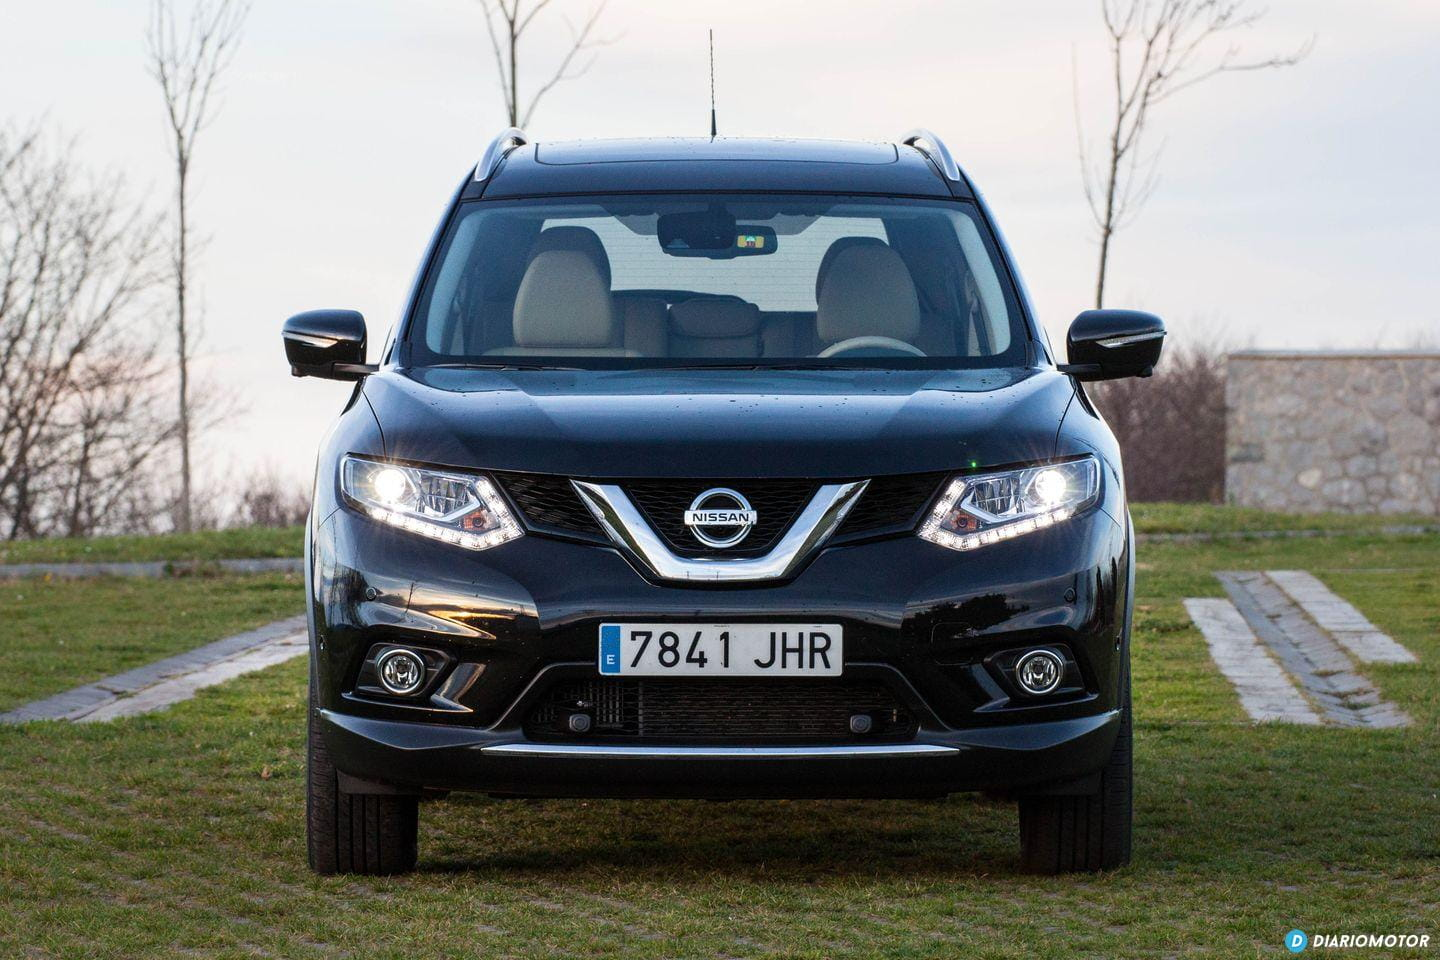 nissan x trail dig t 163 cv a prueba cuando un suv de siete plazas con motor de gasolina tiene. Black Bedroom Furniture Sets. Home Design Ideas